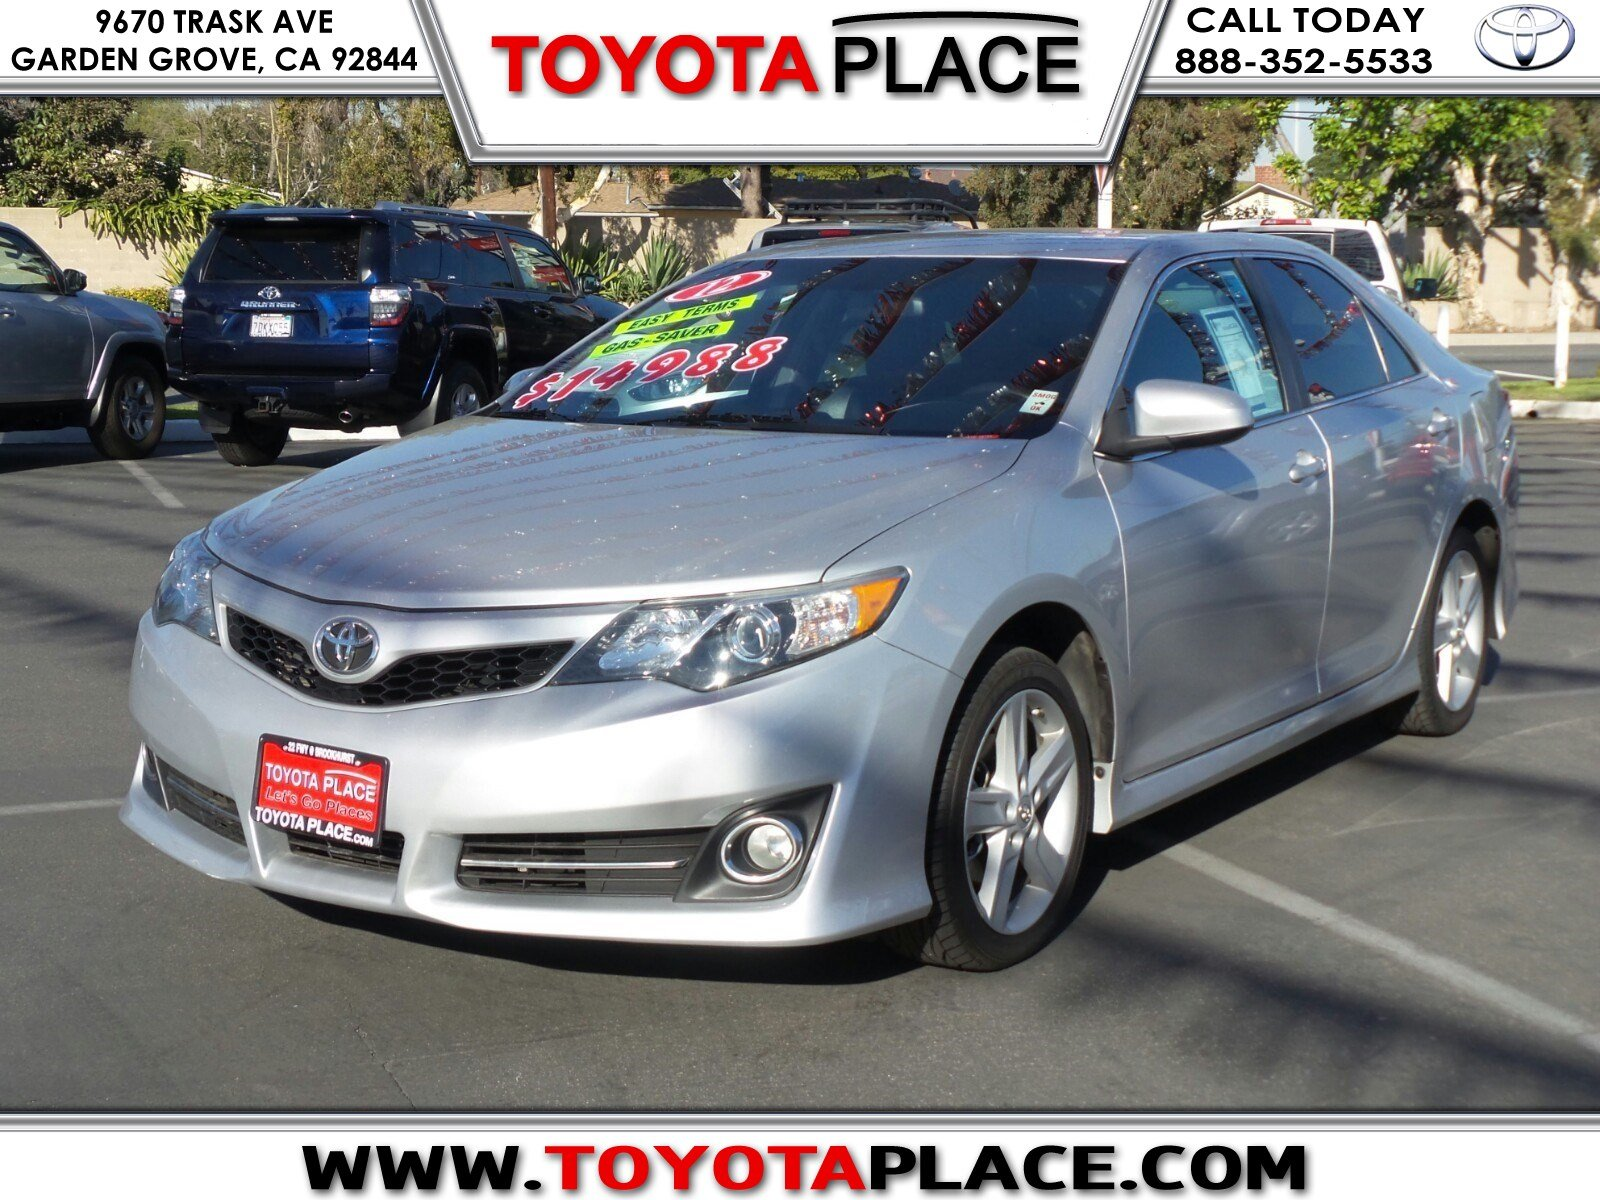 pre owned 2012 toyota camry se 4dr car in garden grove p140979 toyota place. Black Bedroom Furniture Sets. Home Design Ideas